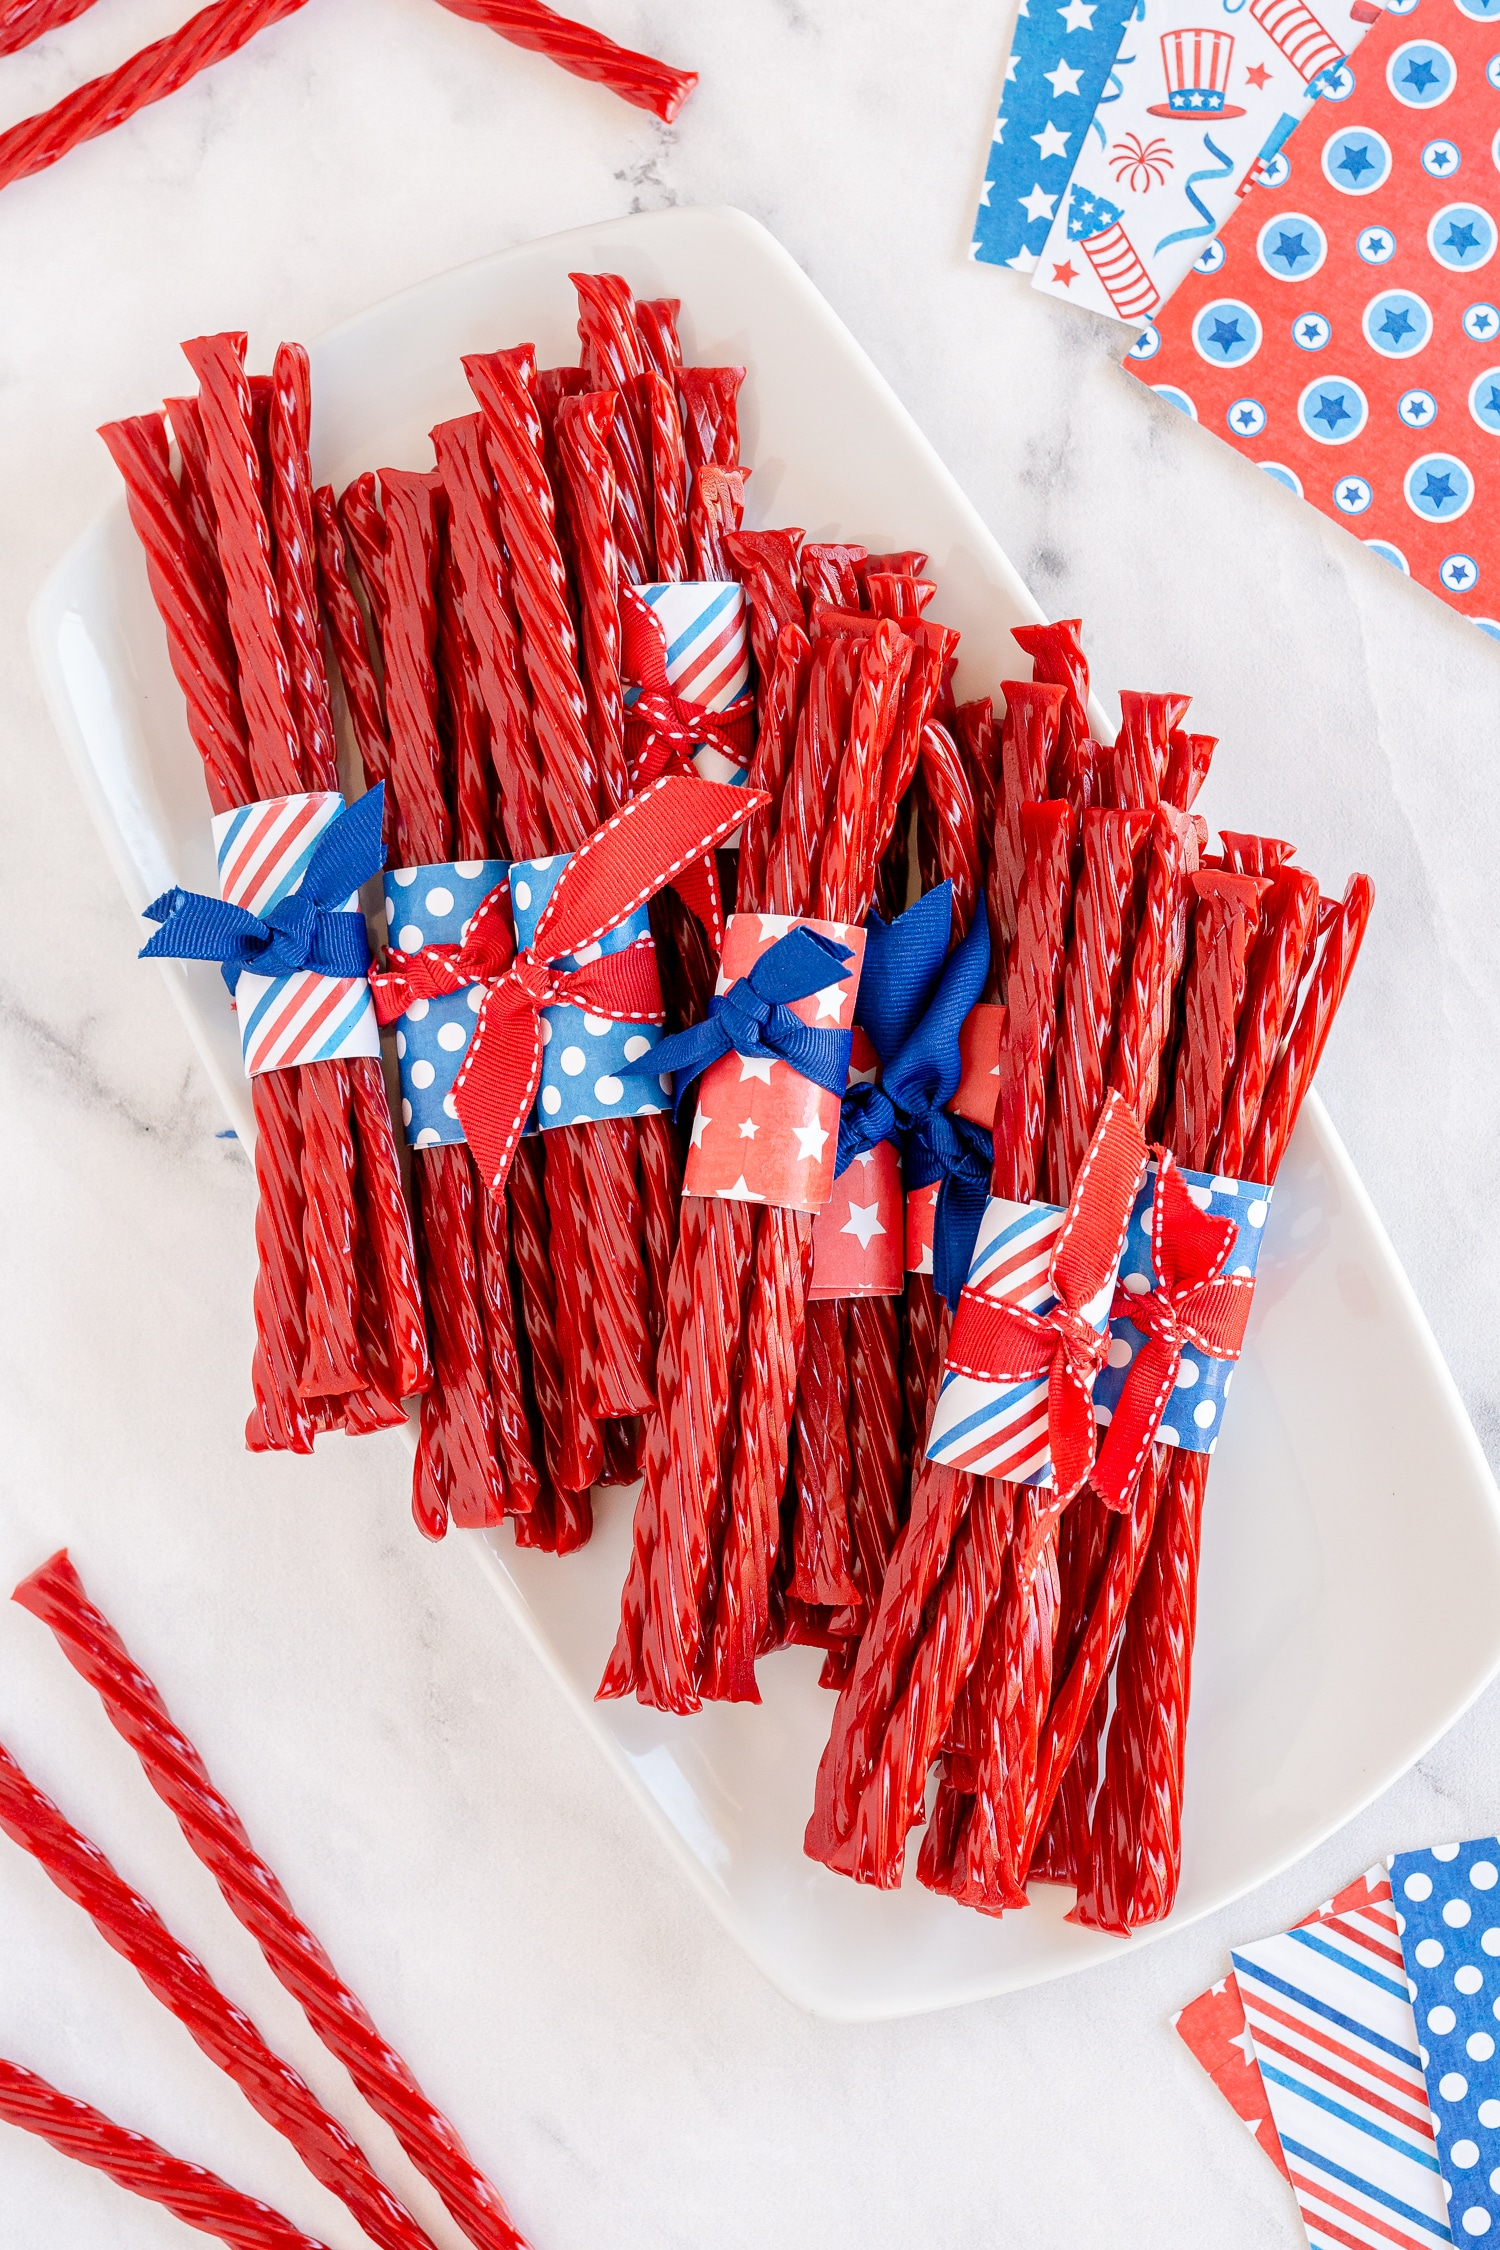 Twizzler Favors on white plate